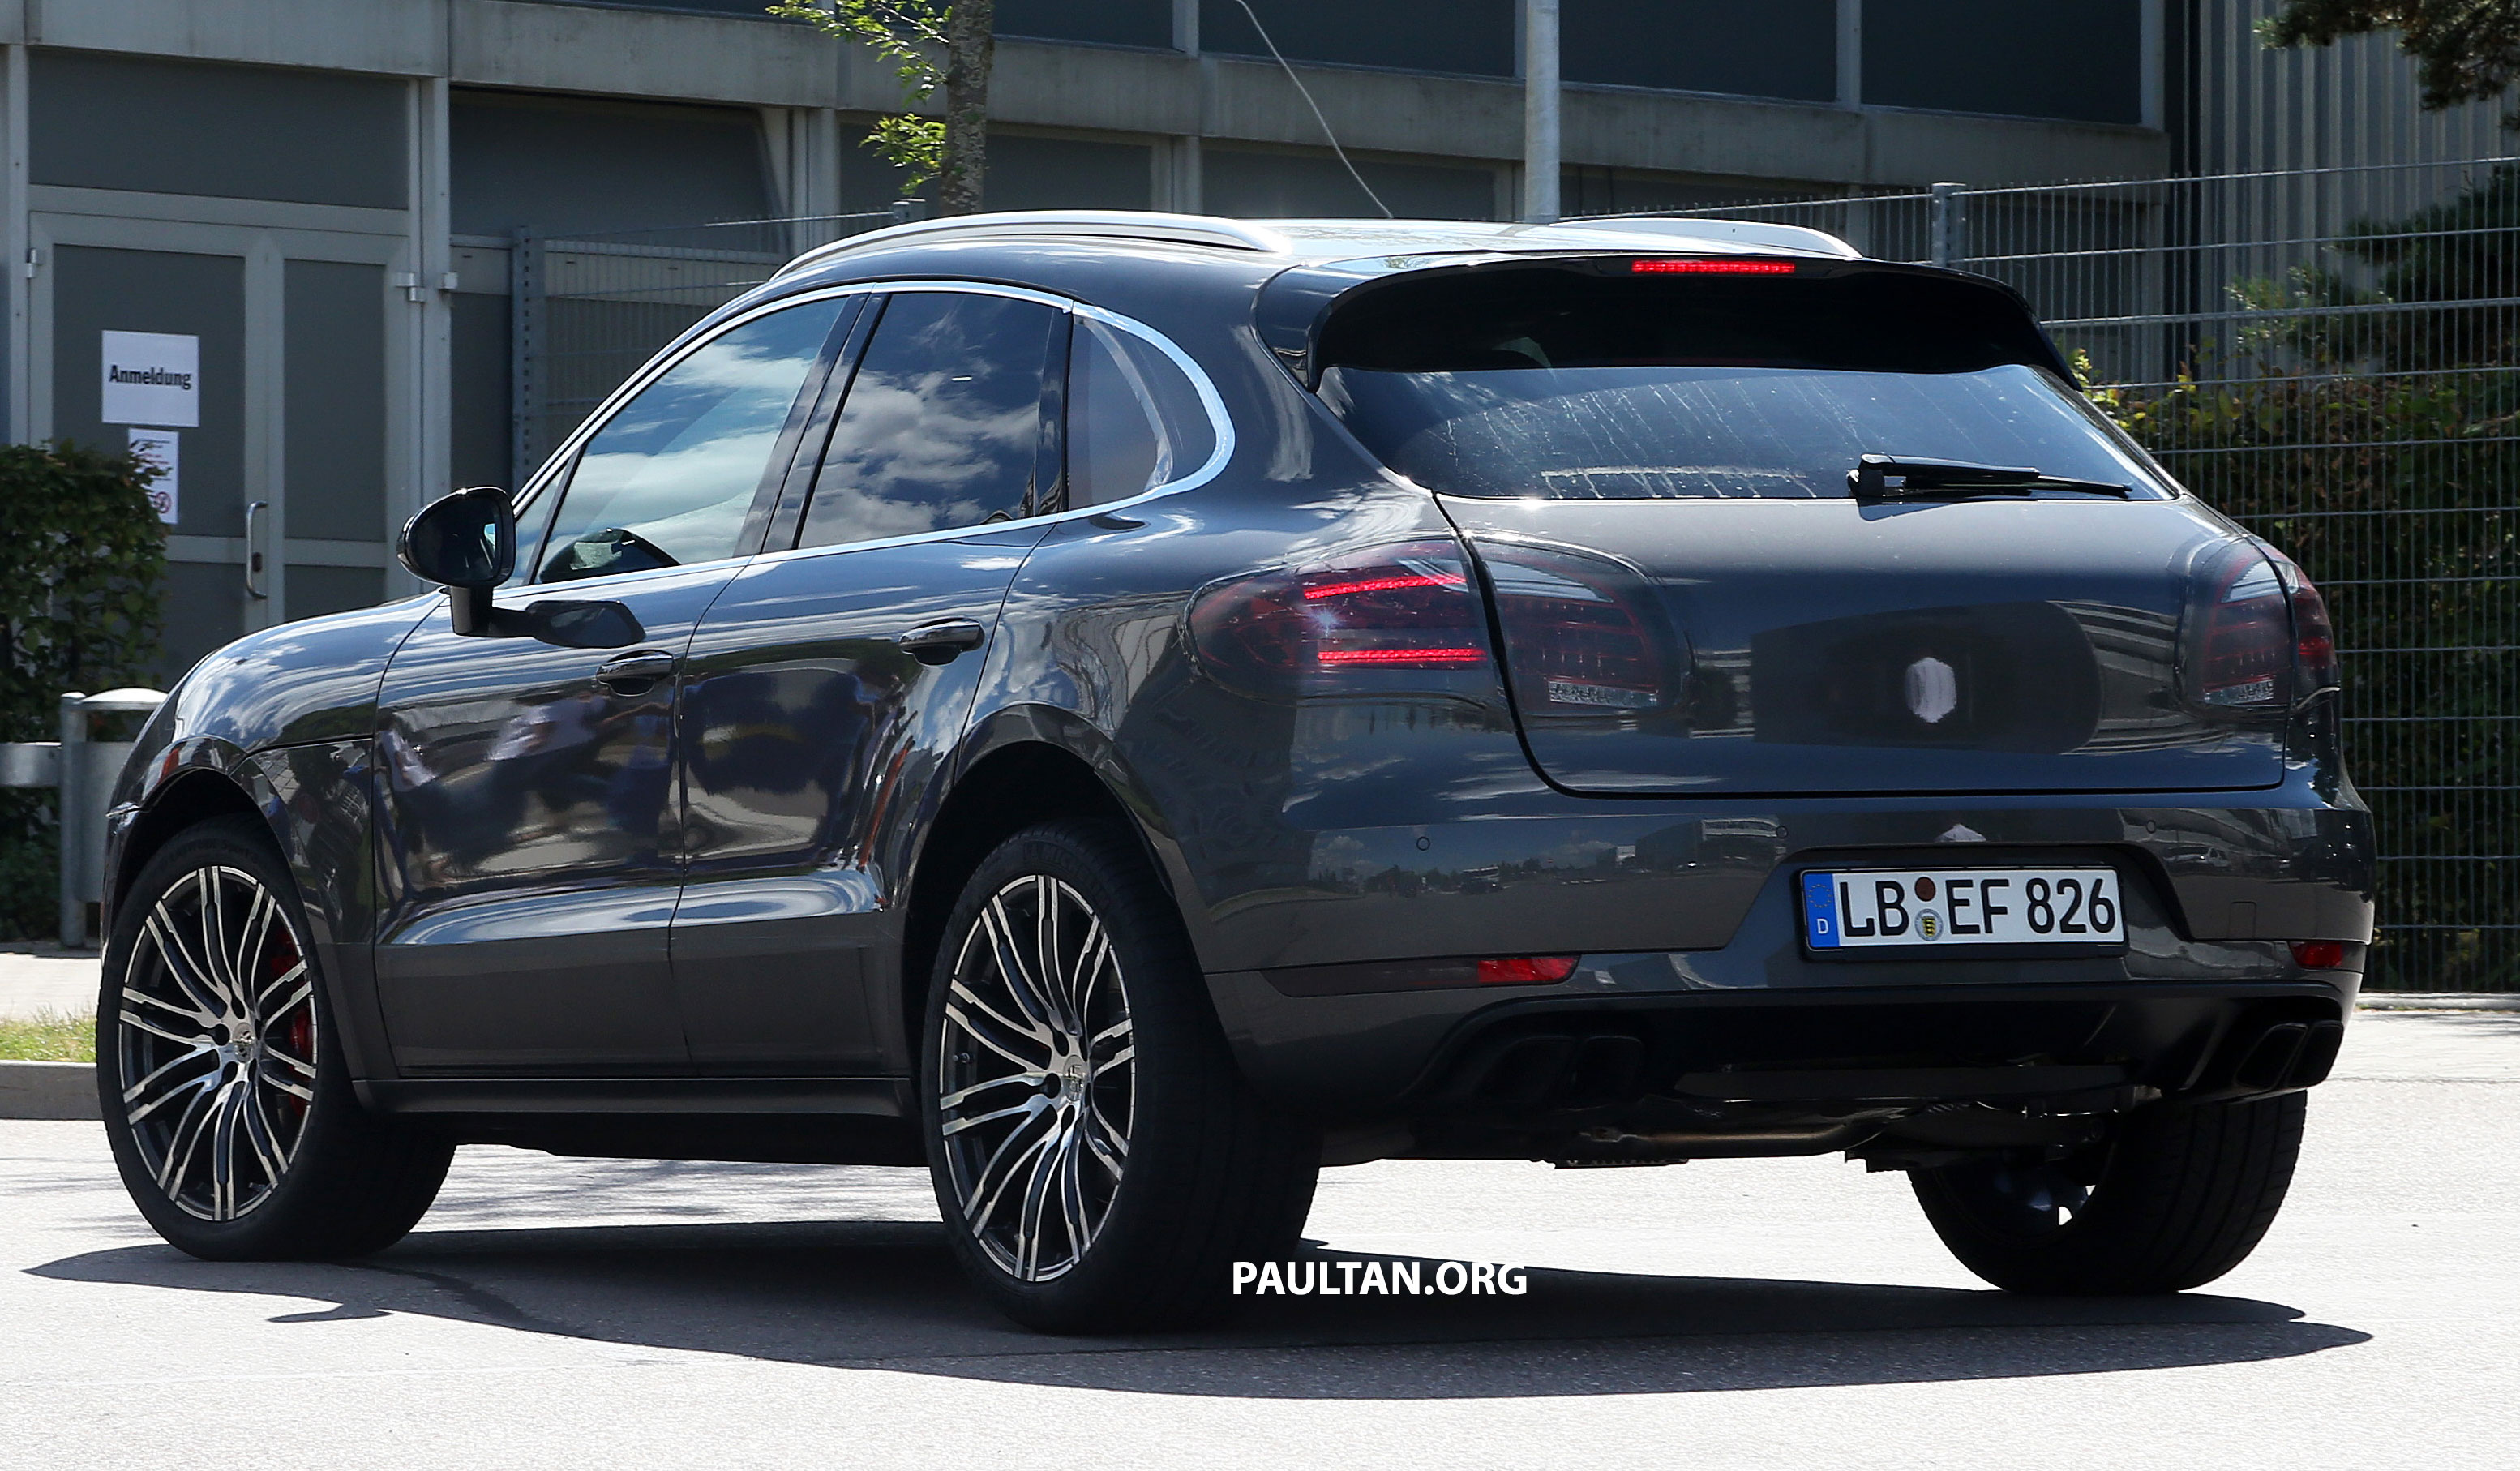 spyshots porsche macan with minimal disguise image 190934